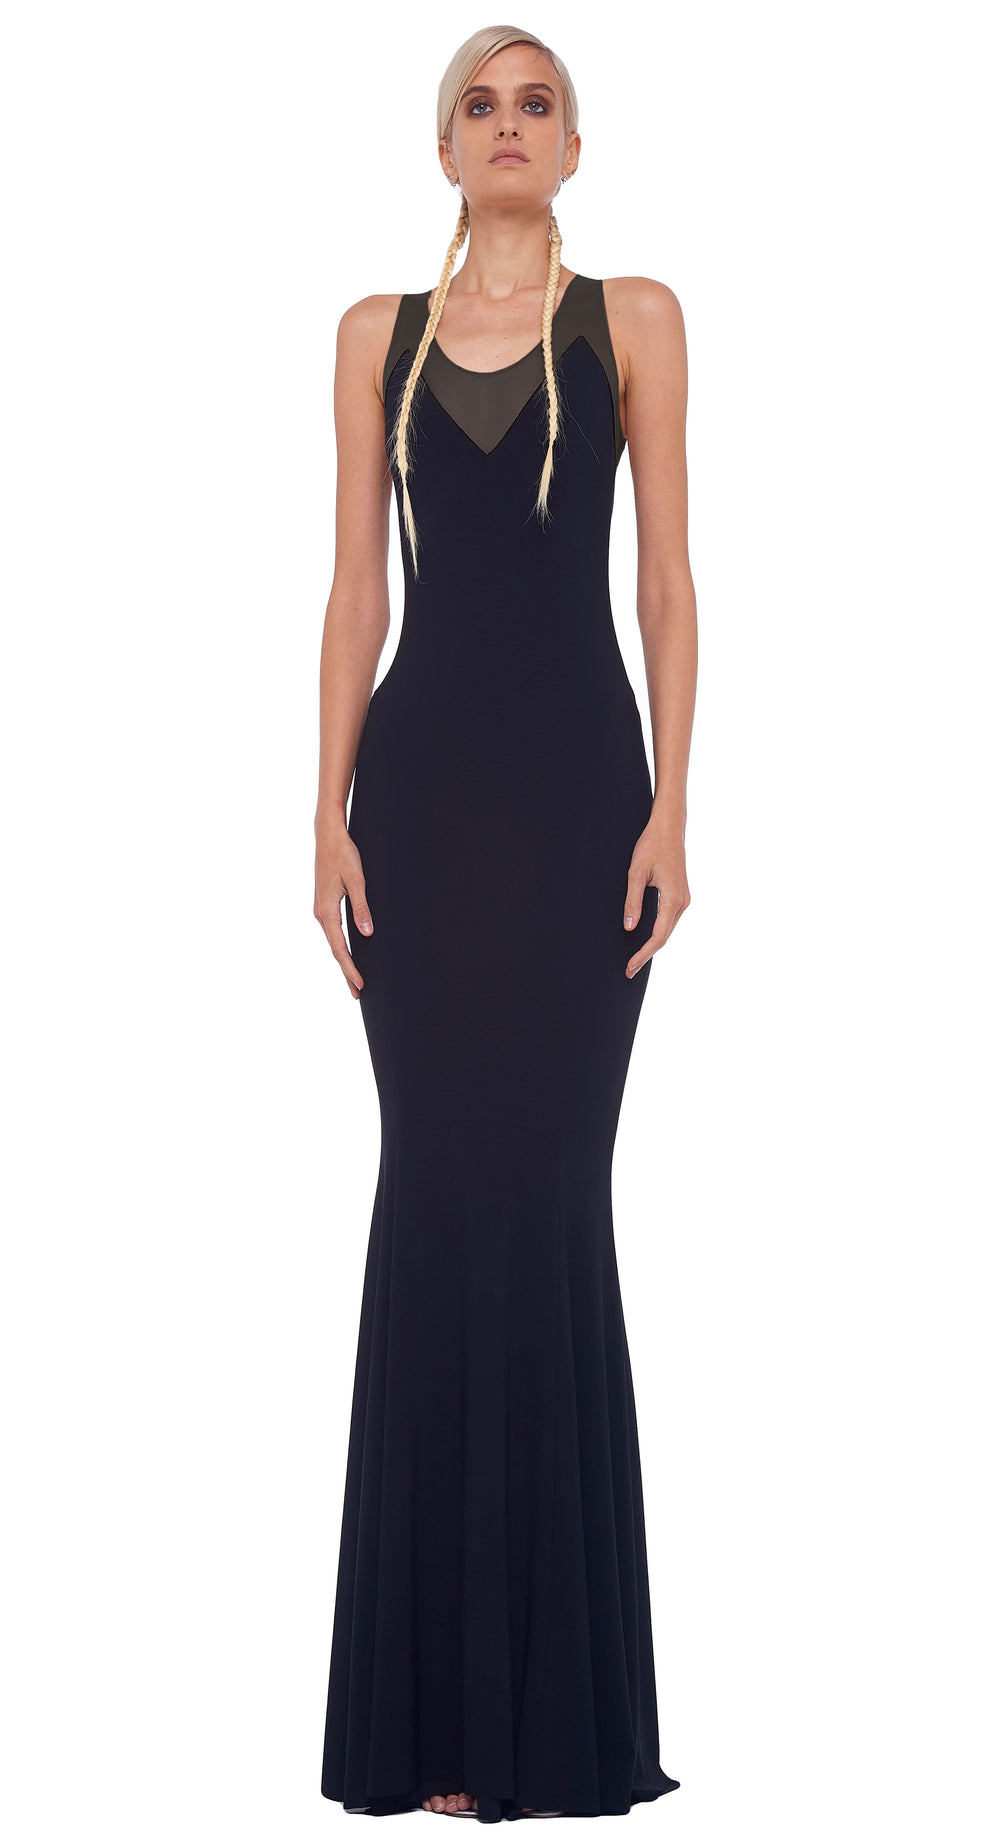 RACER FISHTAIL GOWN COMBO